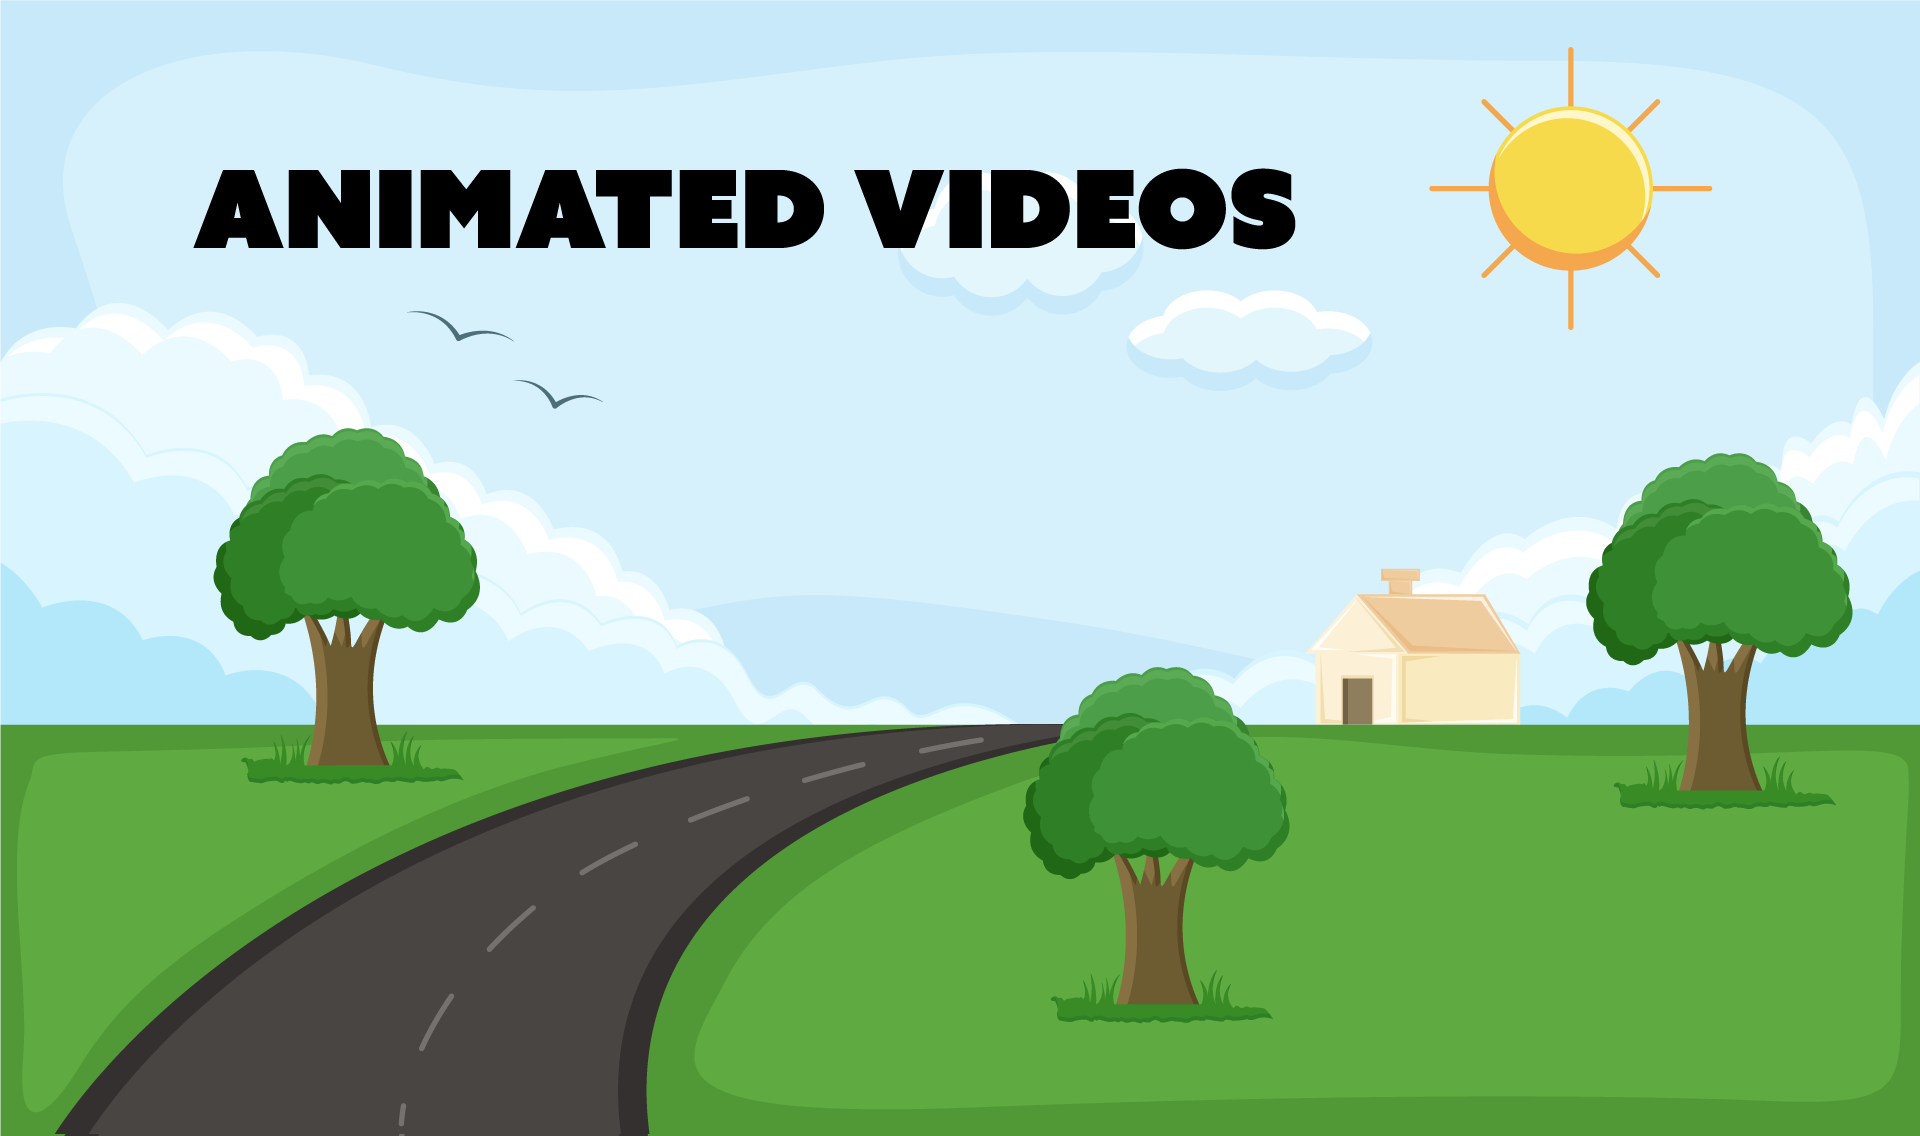 animated video illustration of a road through fields